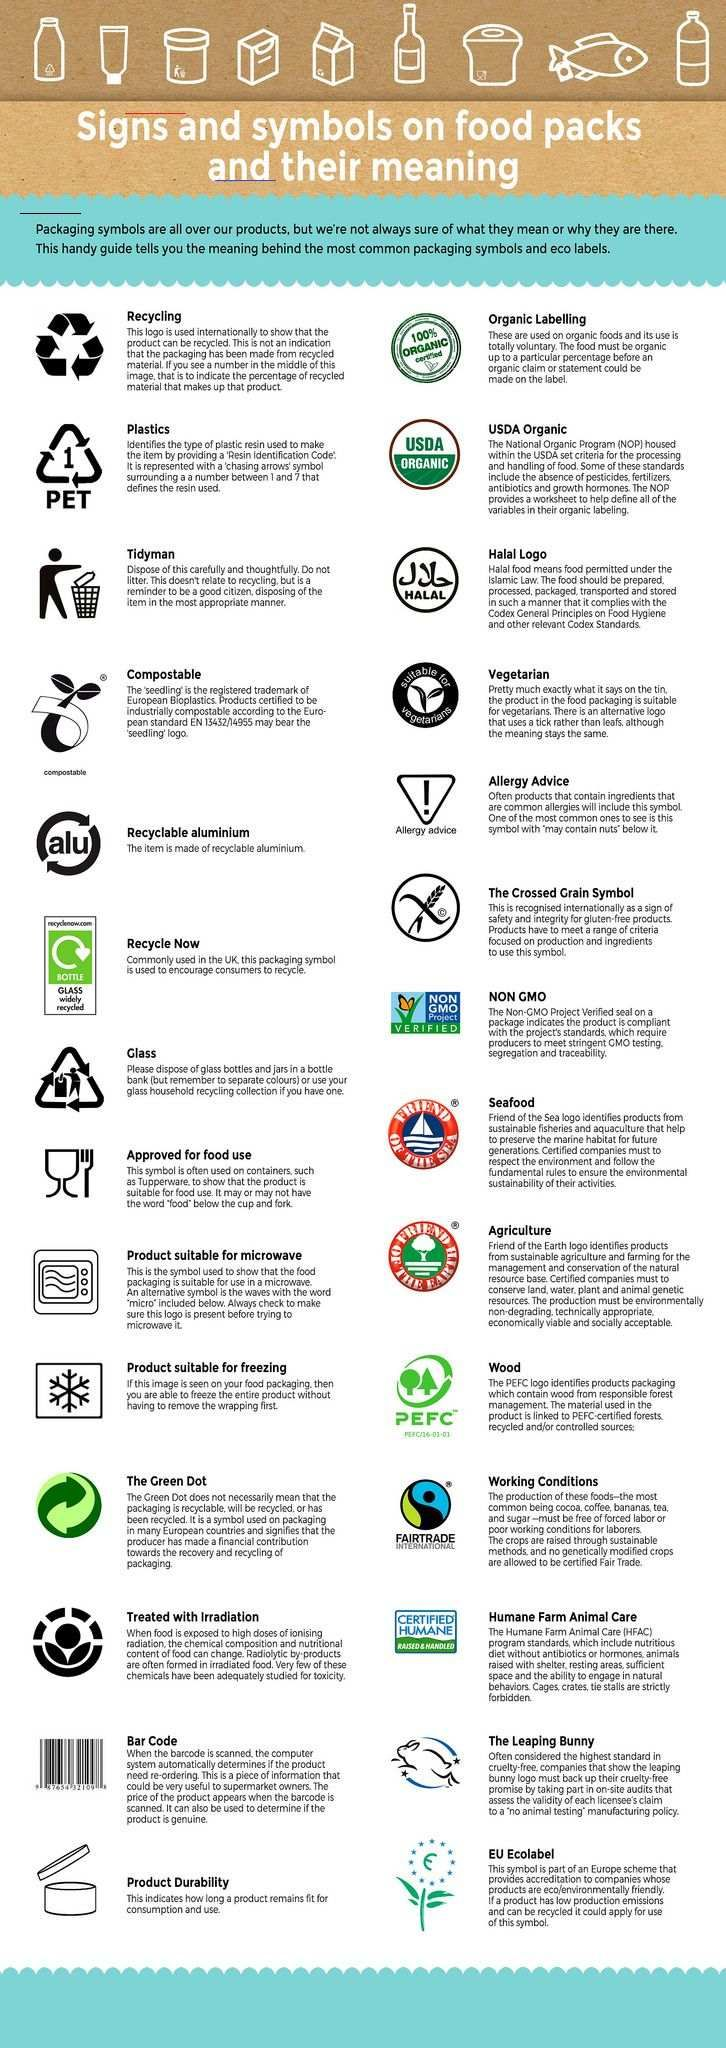 Most Popular Signs Symbols Ecolabels On Food Packaging And Their Meaning Most Popular Signs Symbols And Ecolabels In 2020 Lebensmittelverpackung Verpackung Bildung